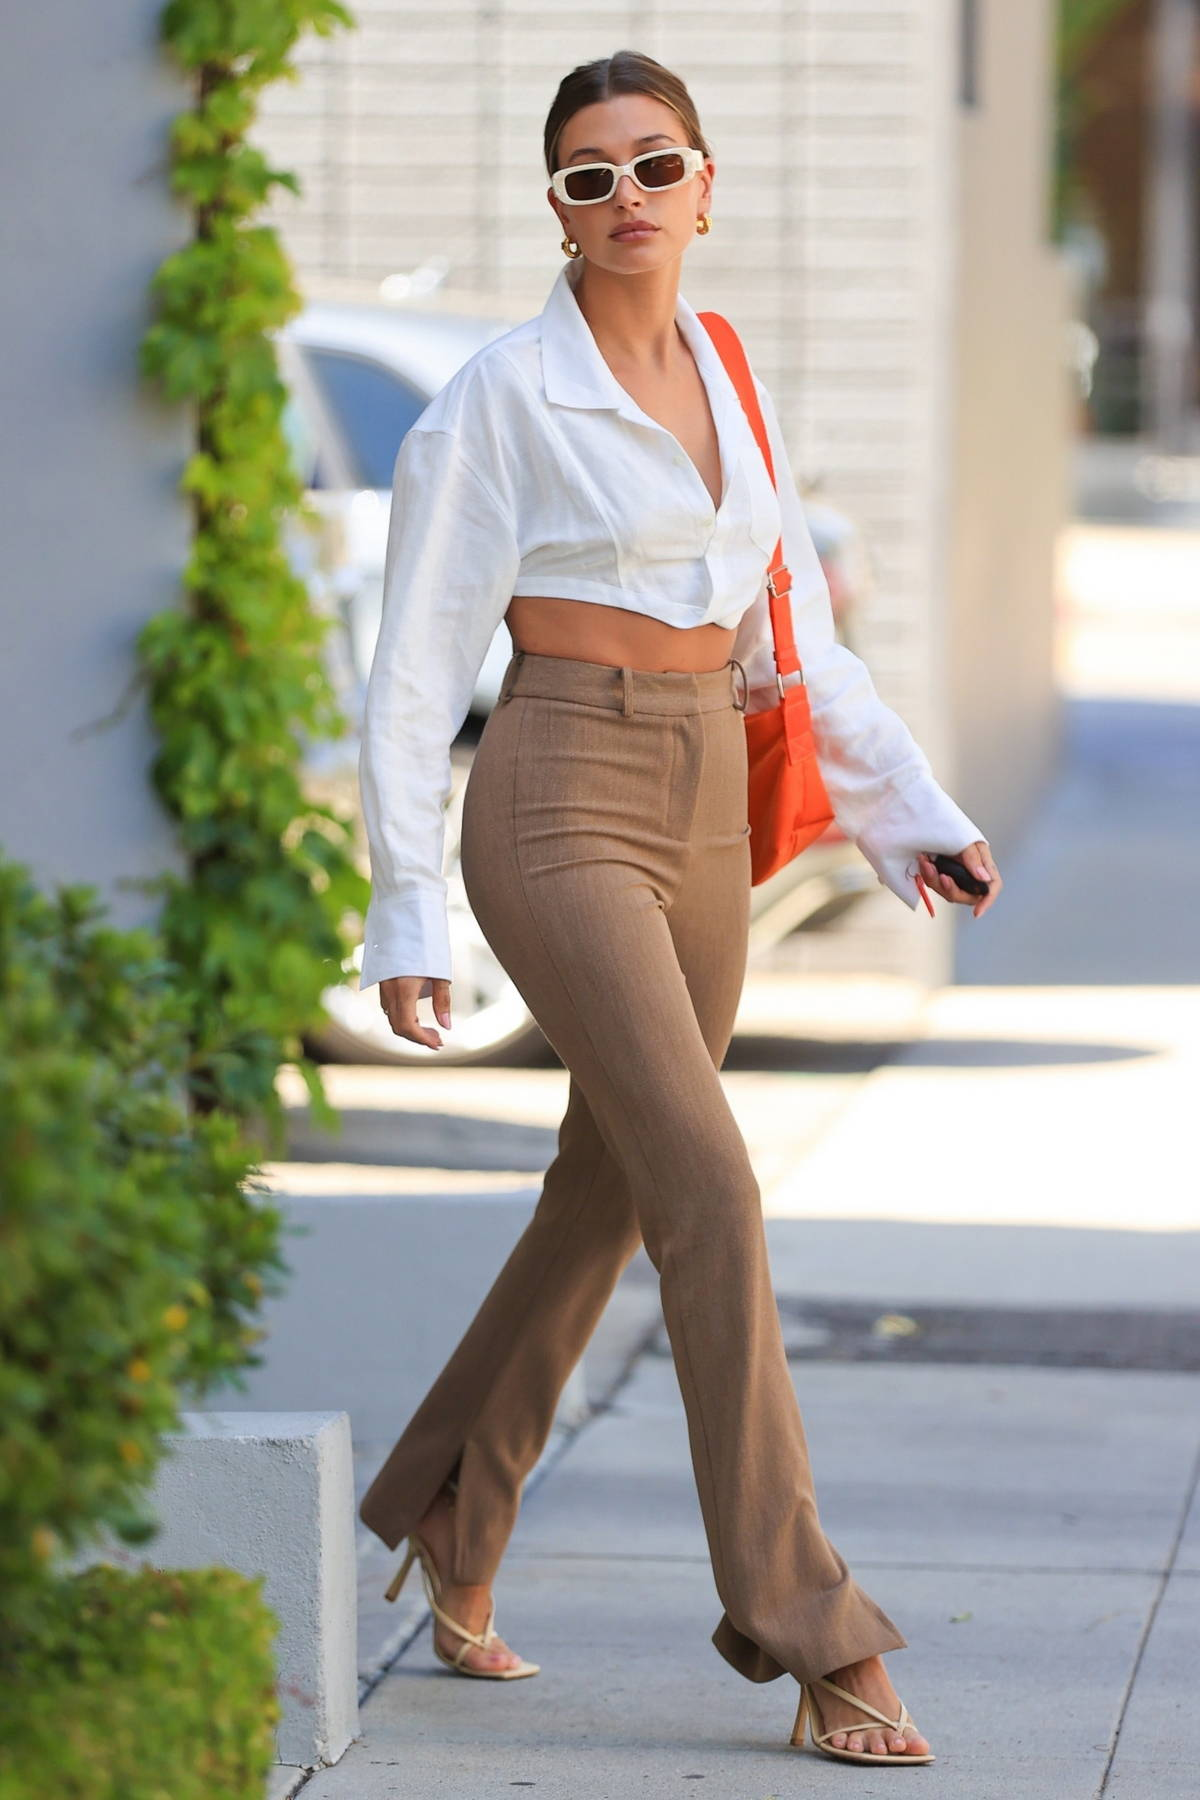 Hailey Bieber looks chic in a cropped white shirt with brown trousers while attending a business meeting in Los Angeles